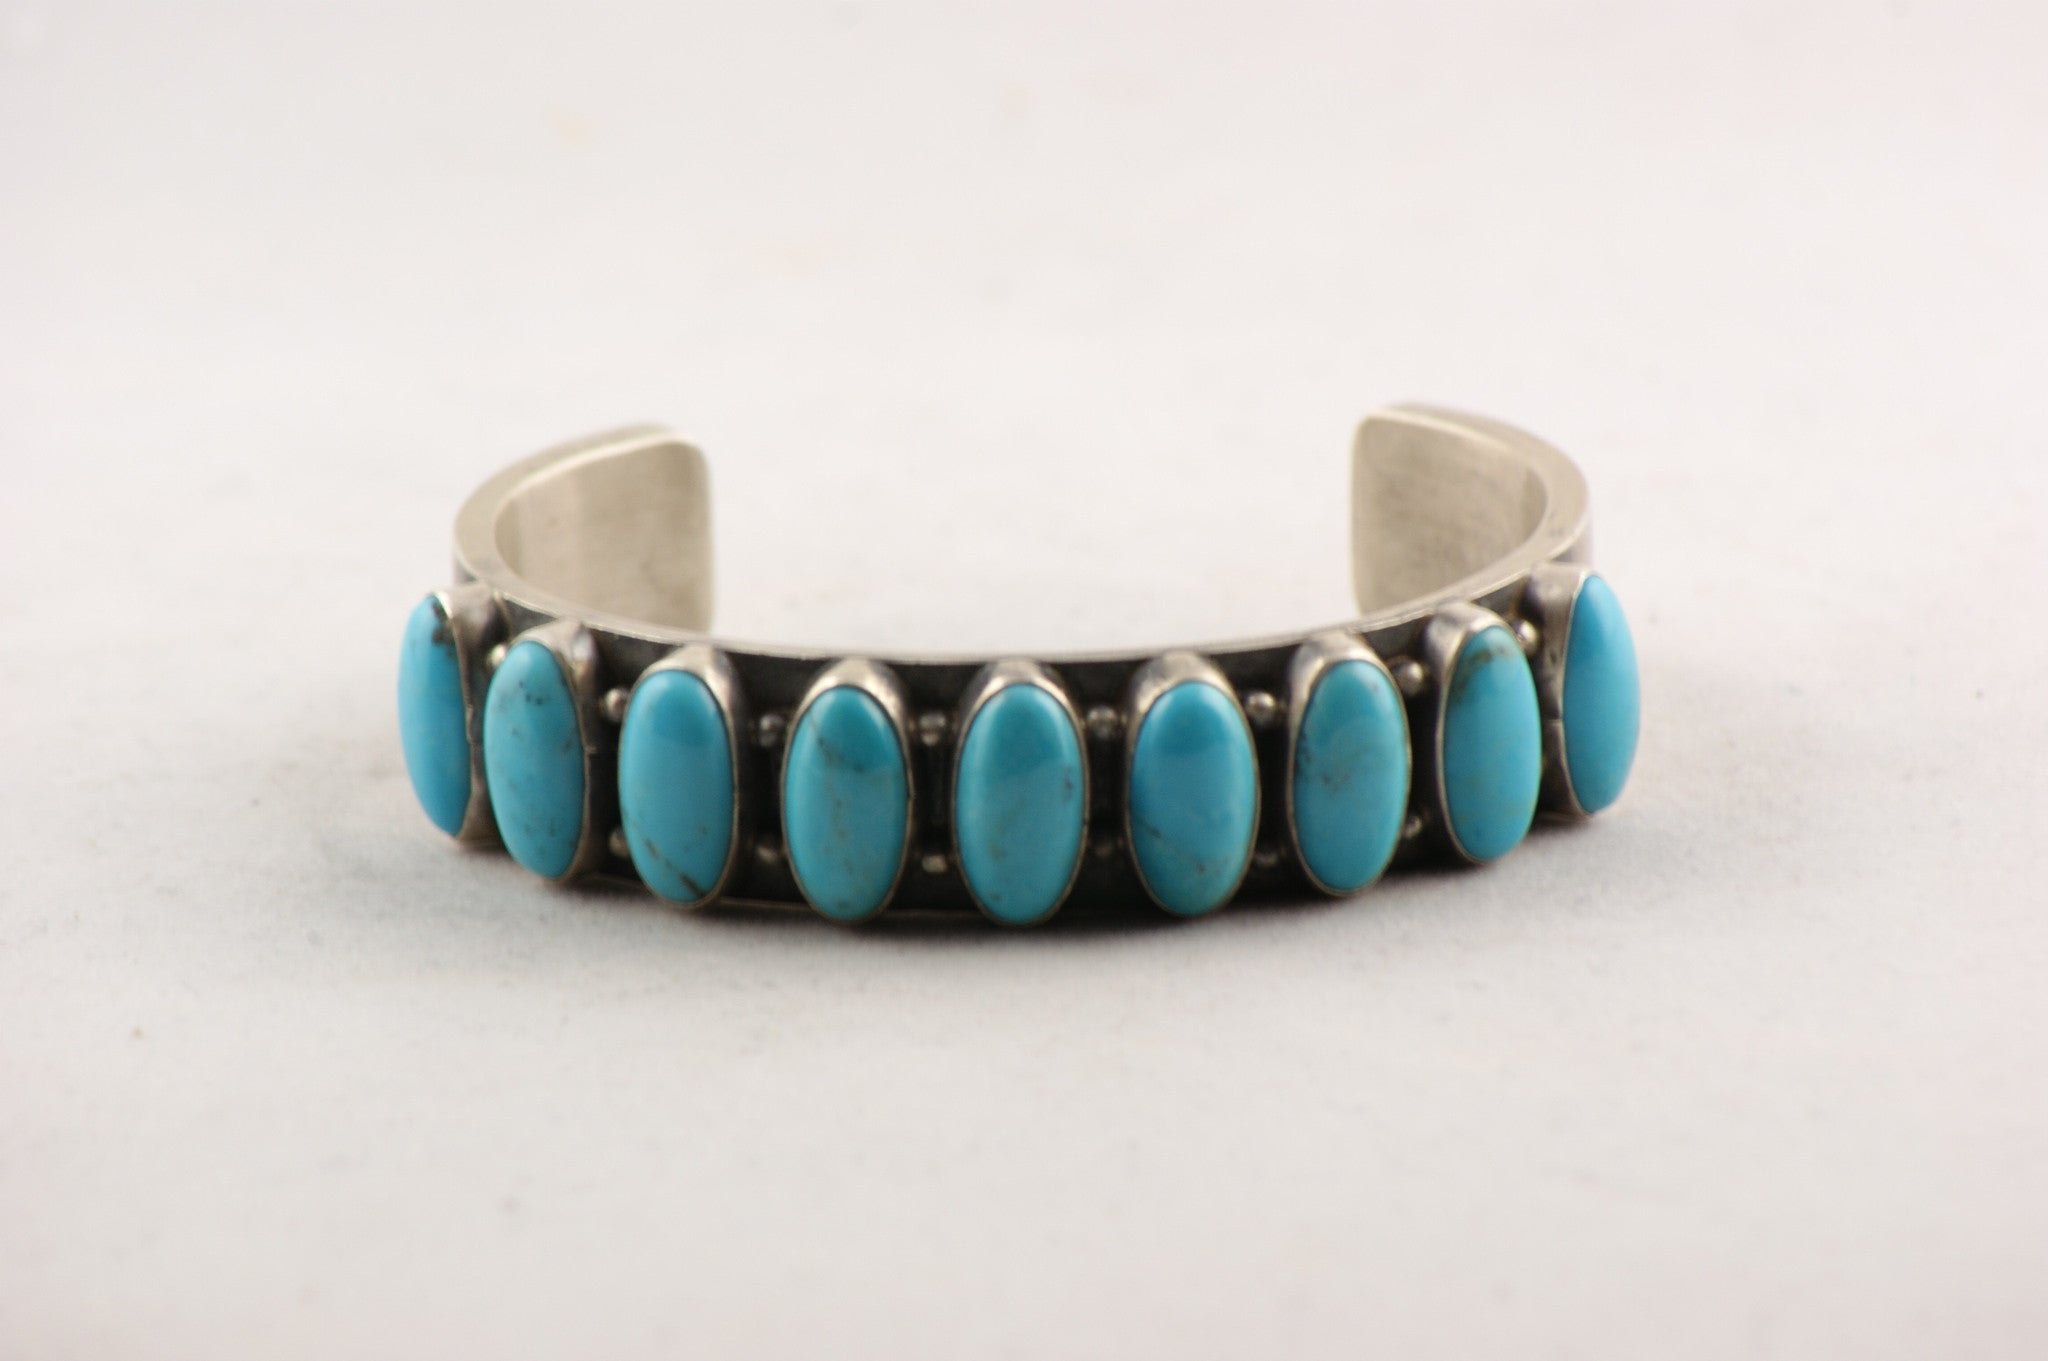 product jewelry bracelet indian lee by l cuff native navajo artist ithaca american turquoise larson